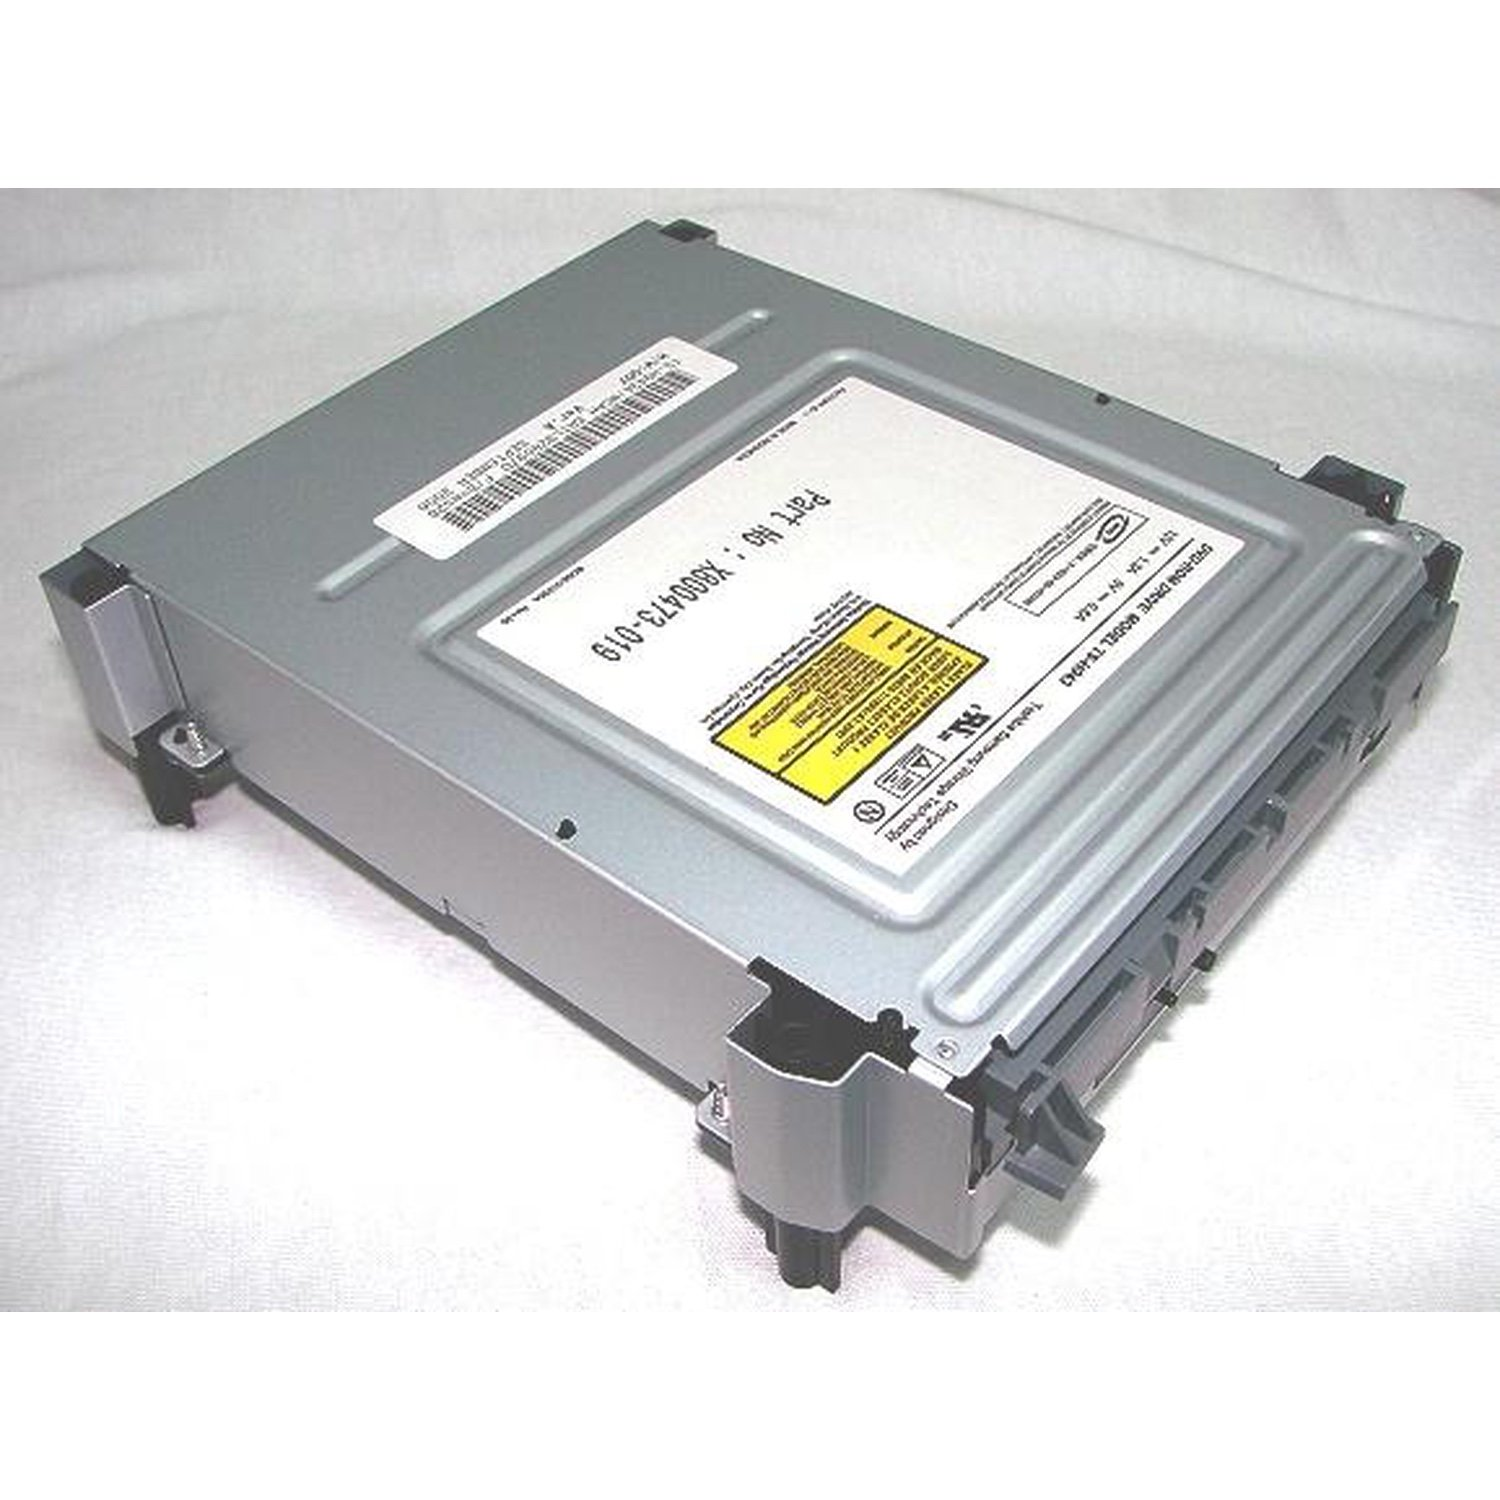 DVD DRIVE SAMSUNG ROM VERSION MS28 FOR XBOX 360 ** NEW **